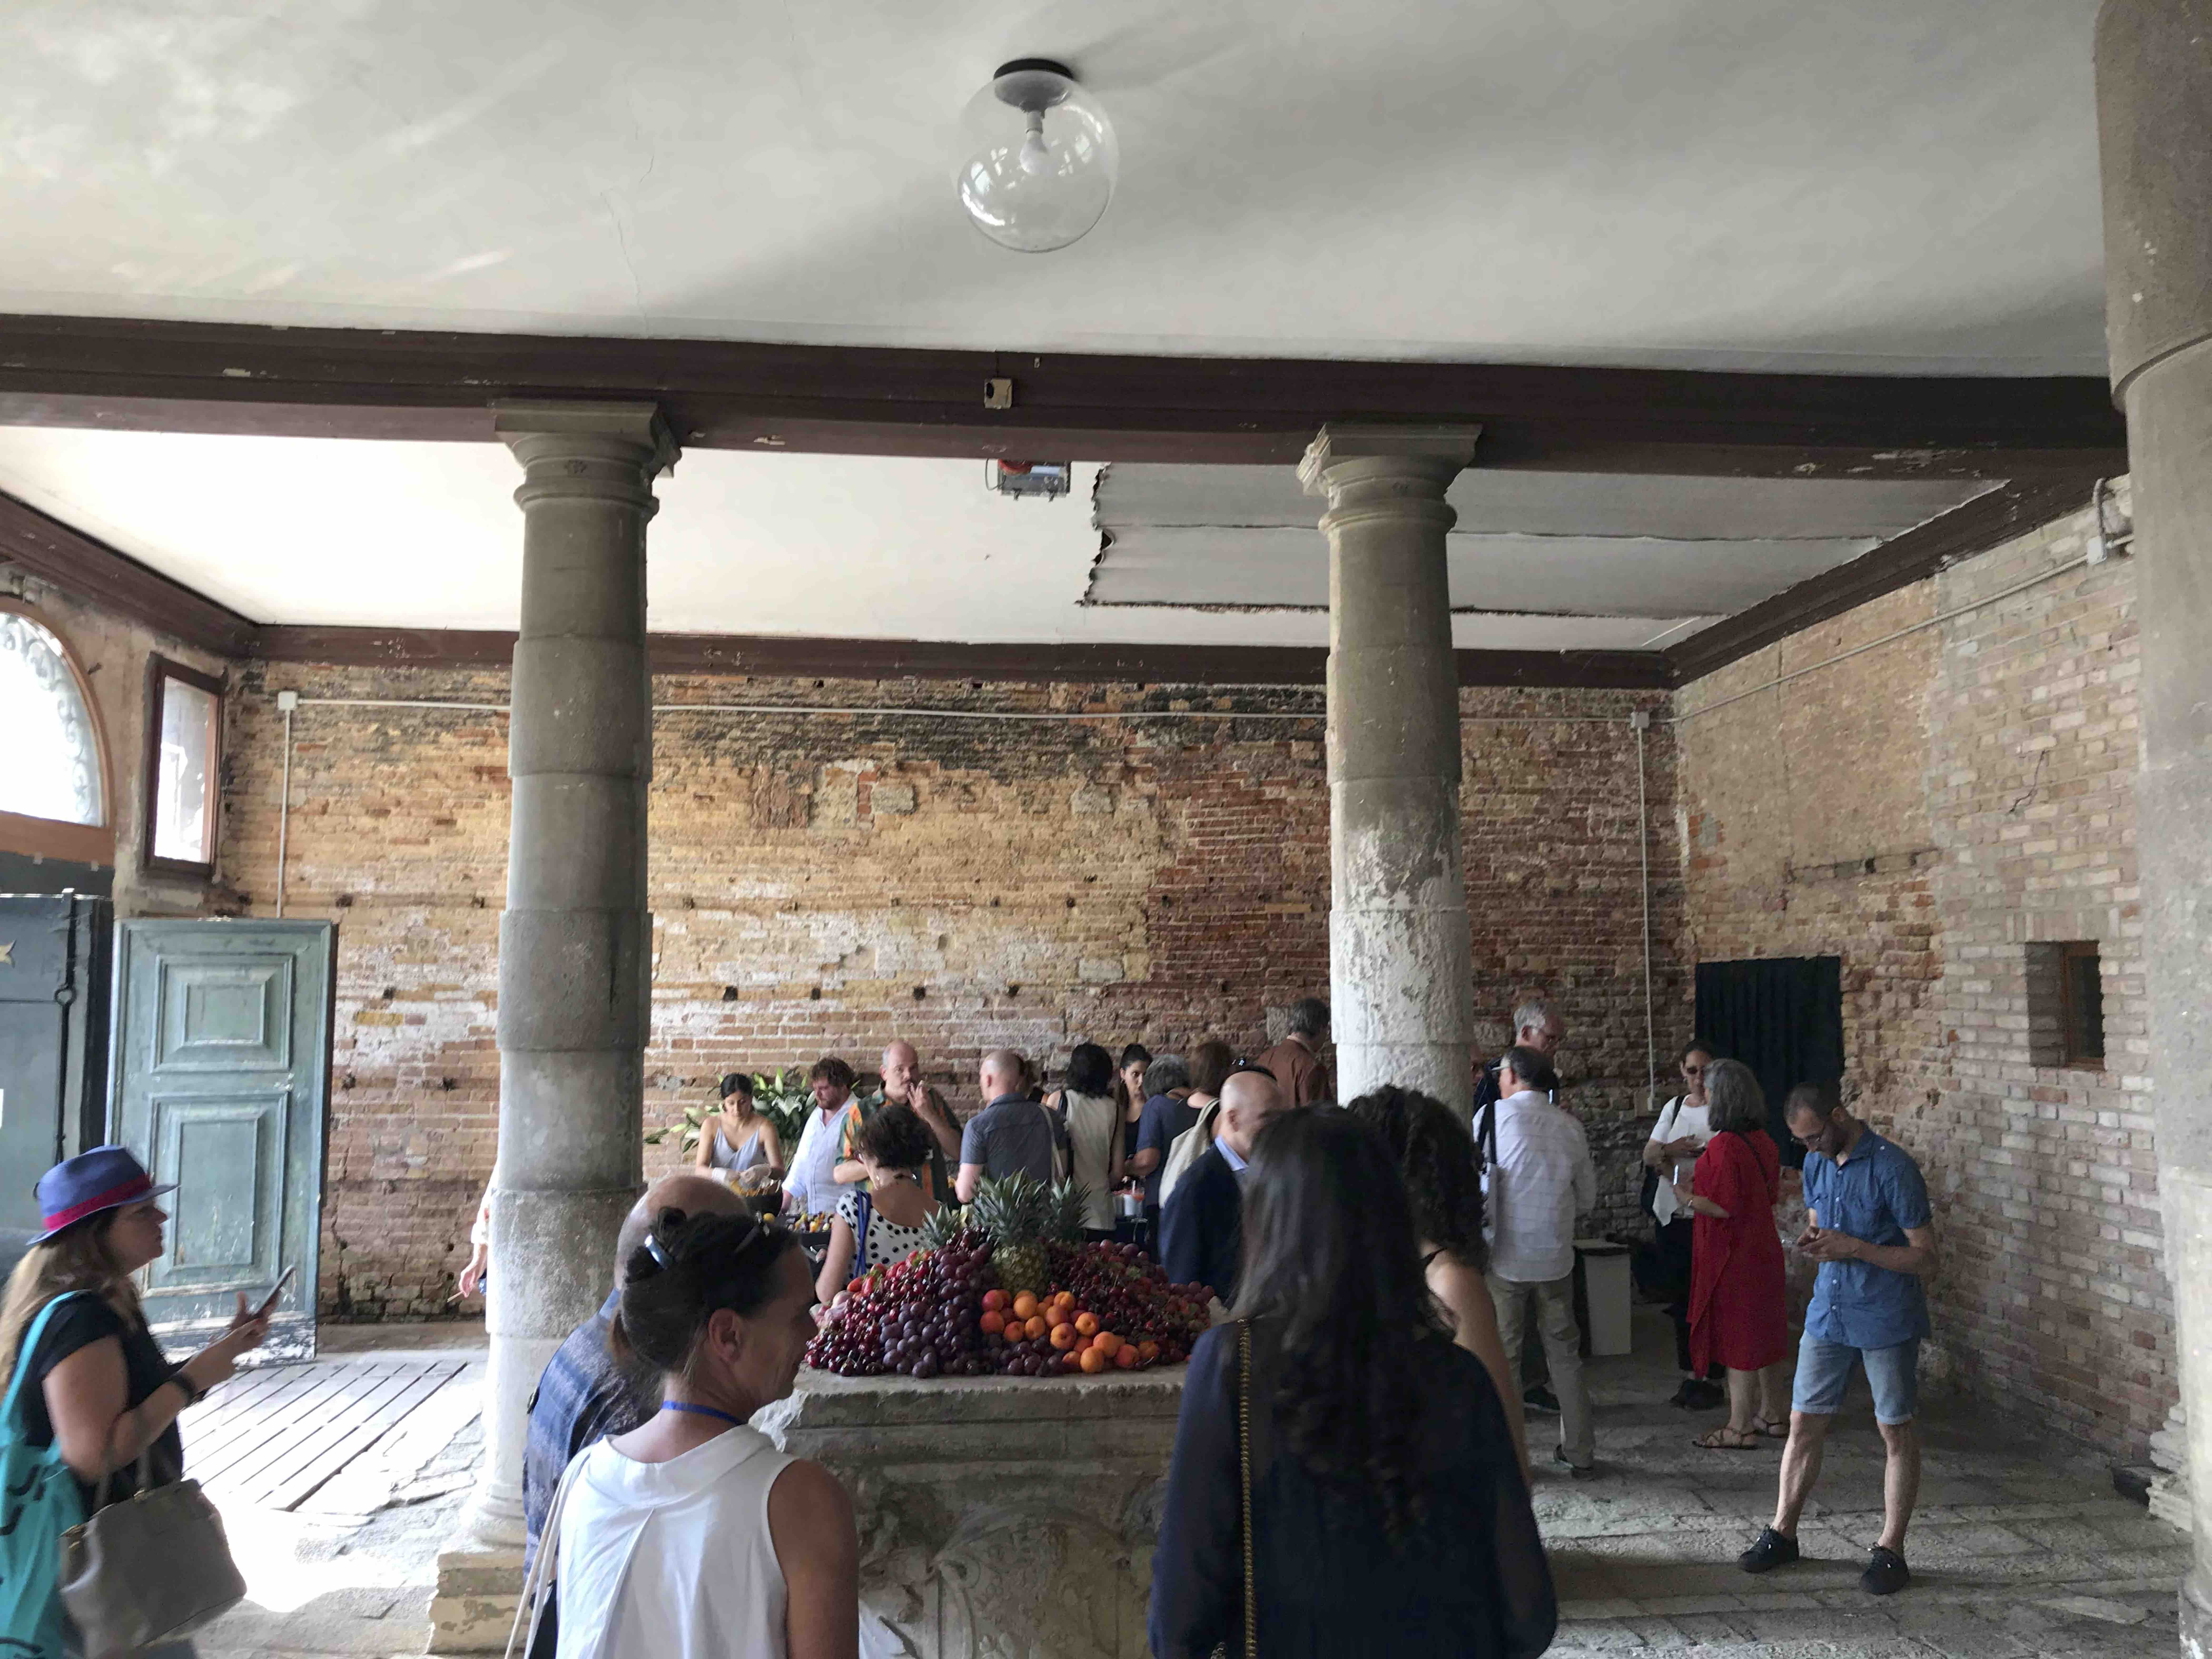 &&&&&78Rizzoli Book Launch PHOTOS_Venice Biennale_2018_05_26_low-res (1) (dragged) 2